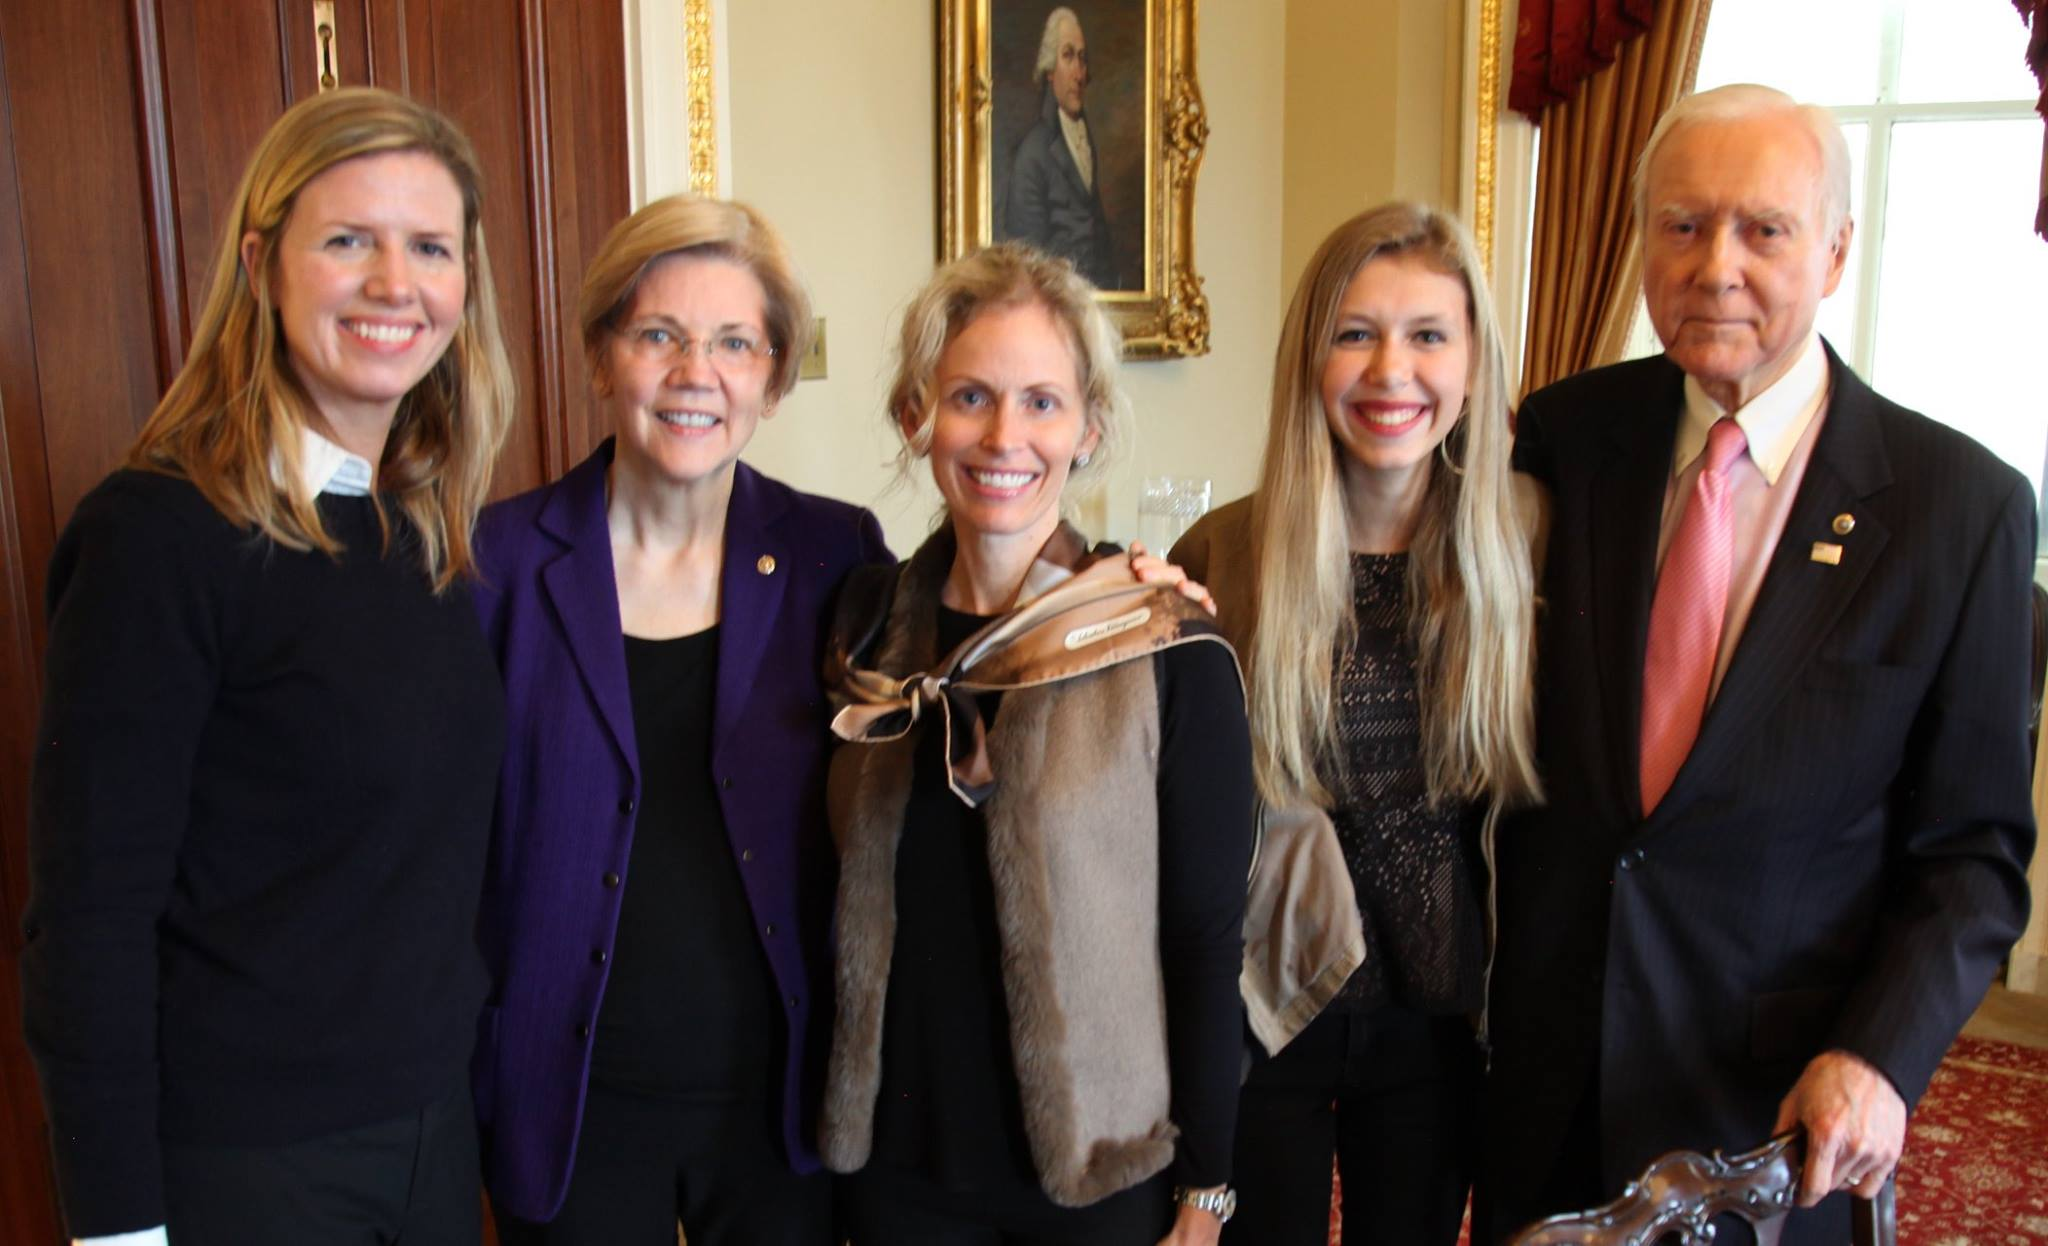 Shannon Cohn, Sen. Elizabeth Warren, Mary Alice Hatch, Emily Hatch and Sen. Orrin Hatch in Washington, D.C.